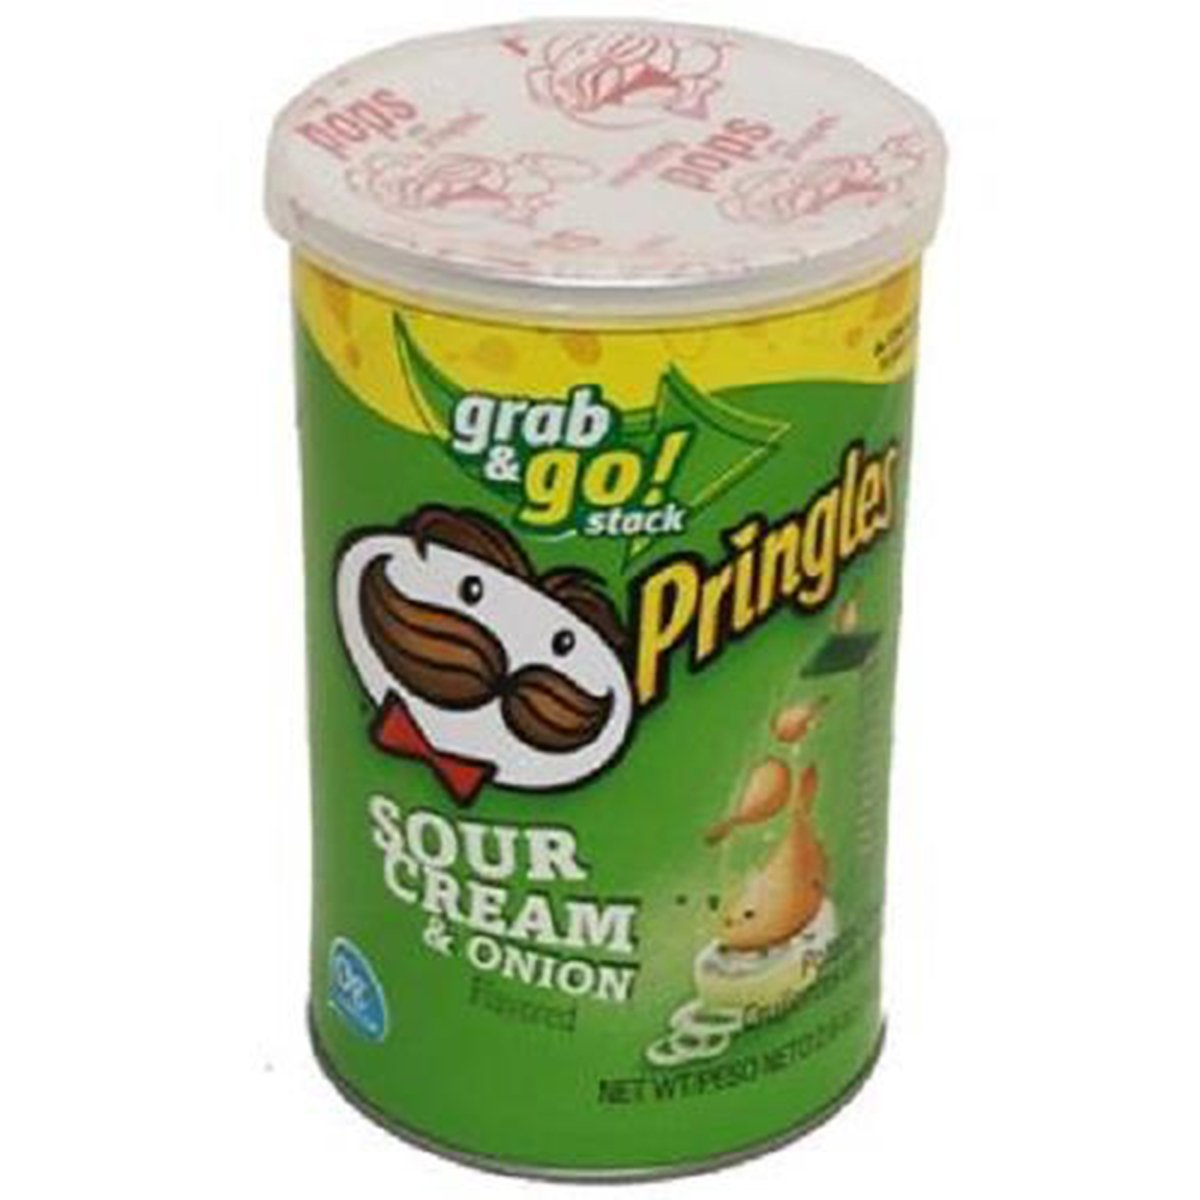 Product Of Pringles, Grab & Go - Sour Cream & Onion Medium, Count 1 - Chips / Grab Varieties & Flavors